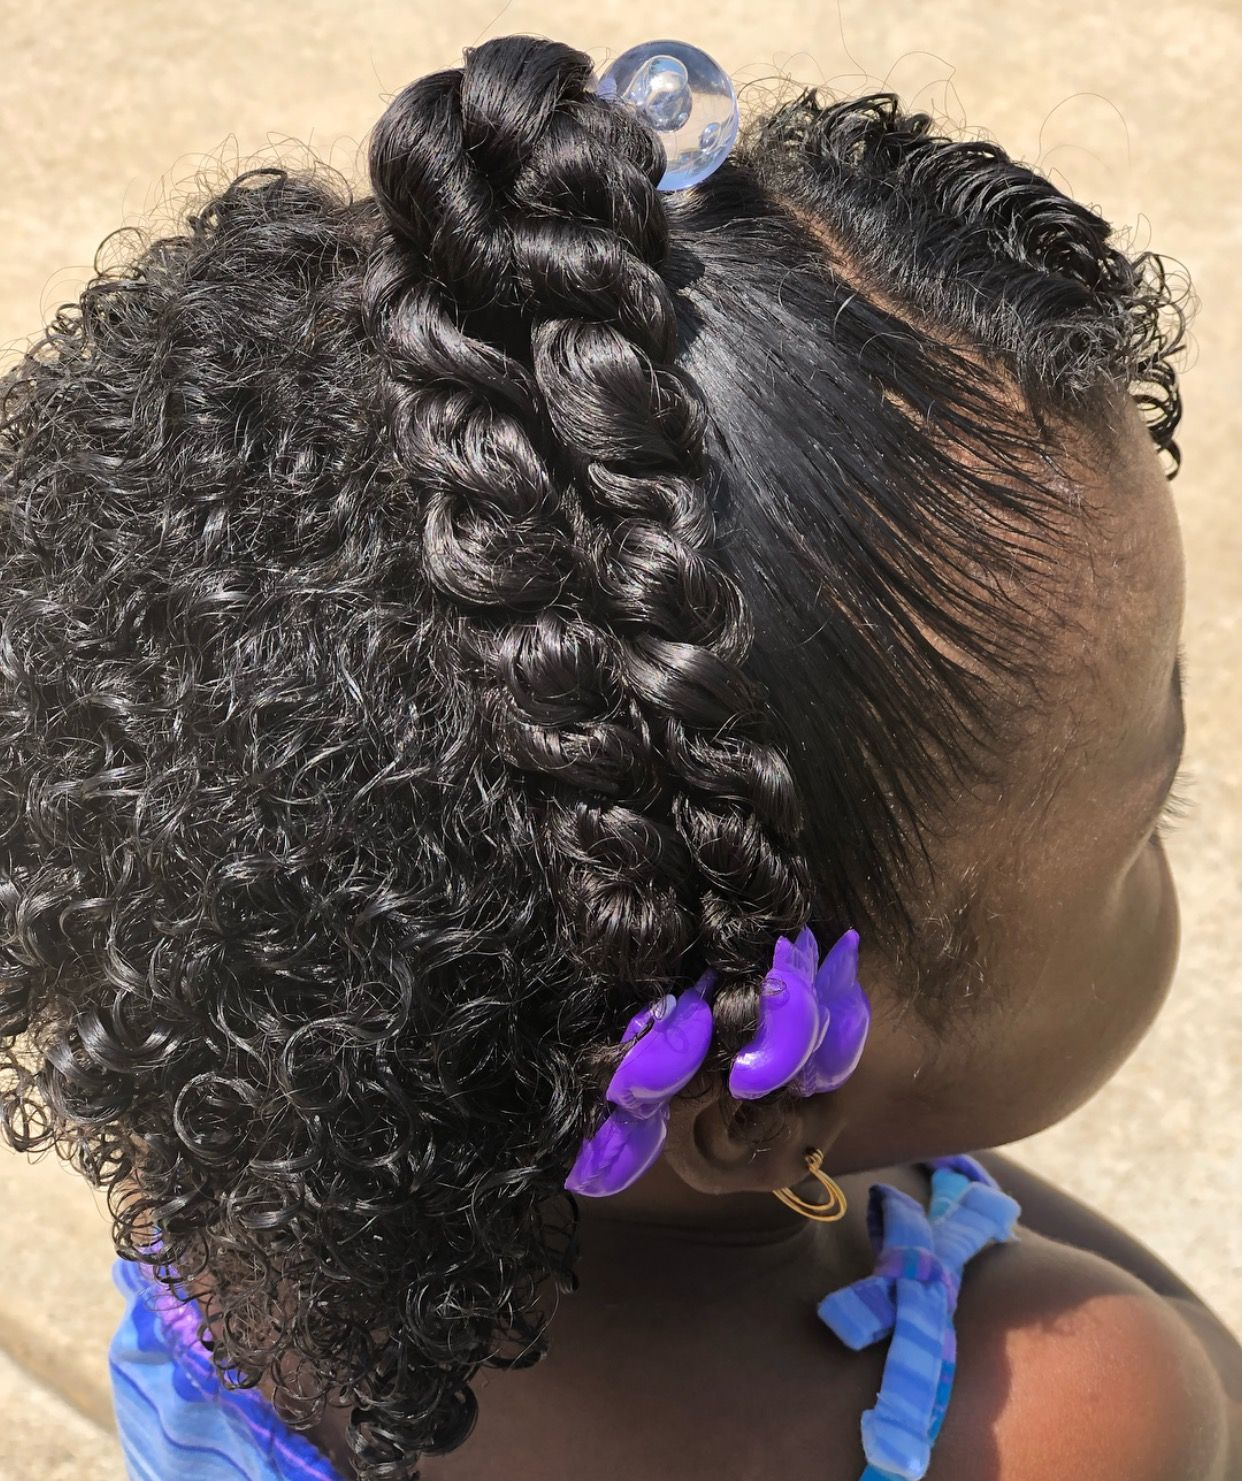 Cute hairstyles for kids hairstyleforblackwomen.net 192